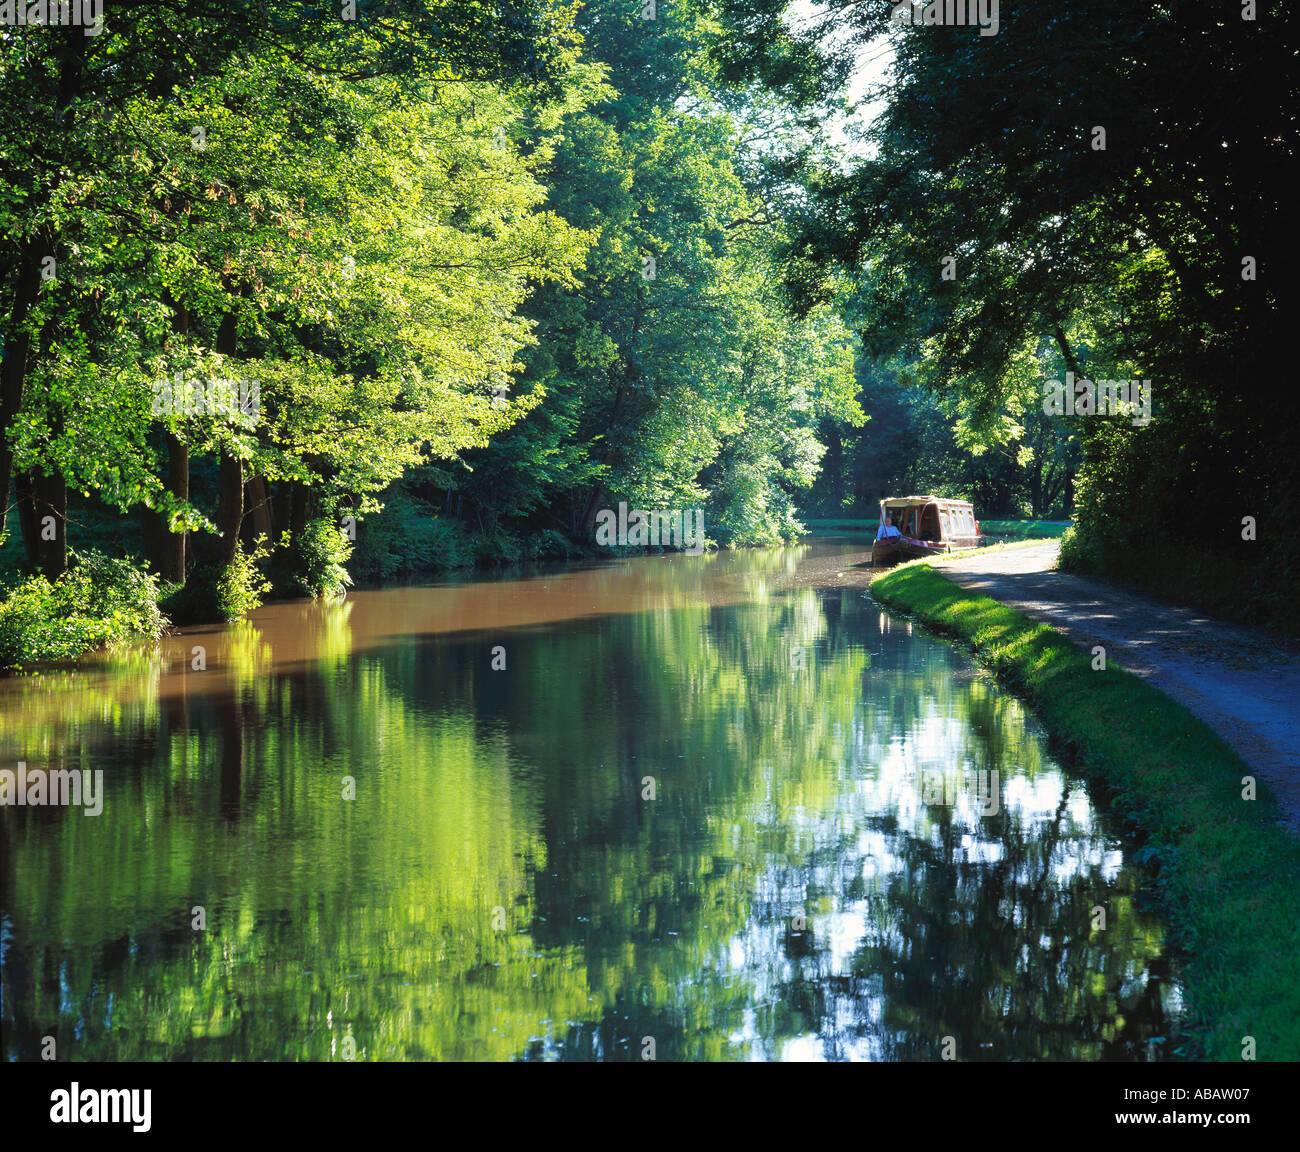 GB WALES MONMOUTHSHIRE BRECON BEACONS NATIONAL PARK BRECON CANAL AT TALYBONT ON USK - Stock Image